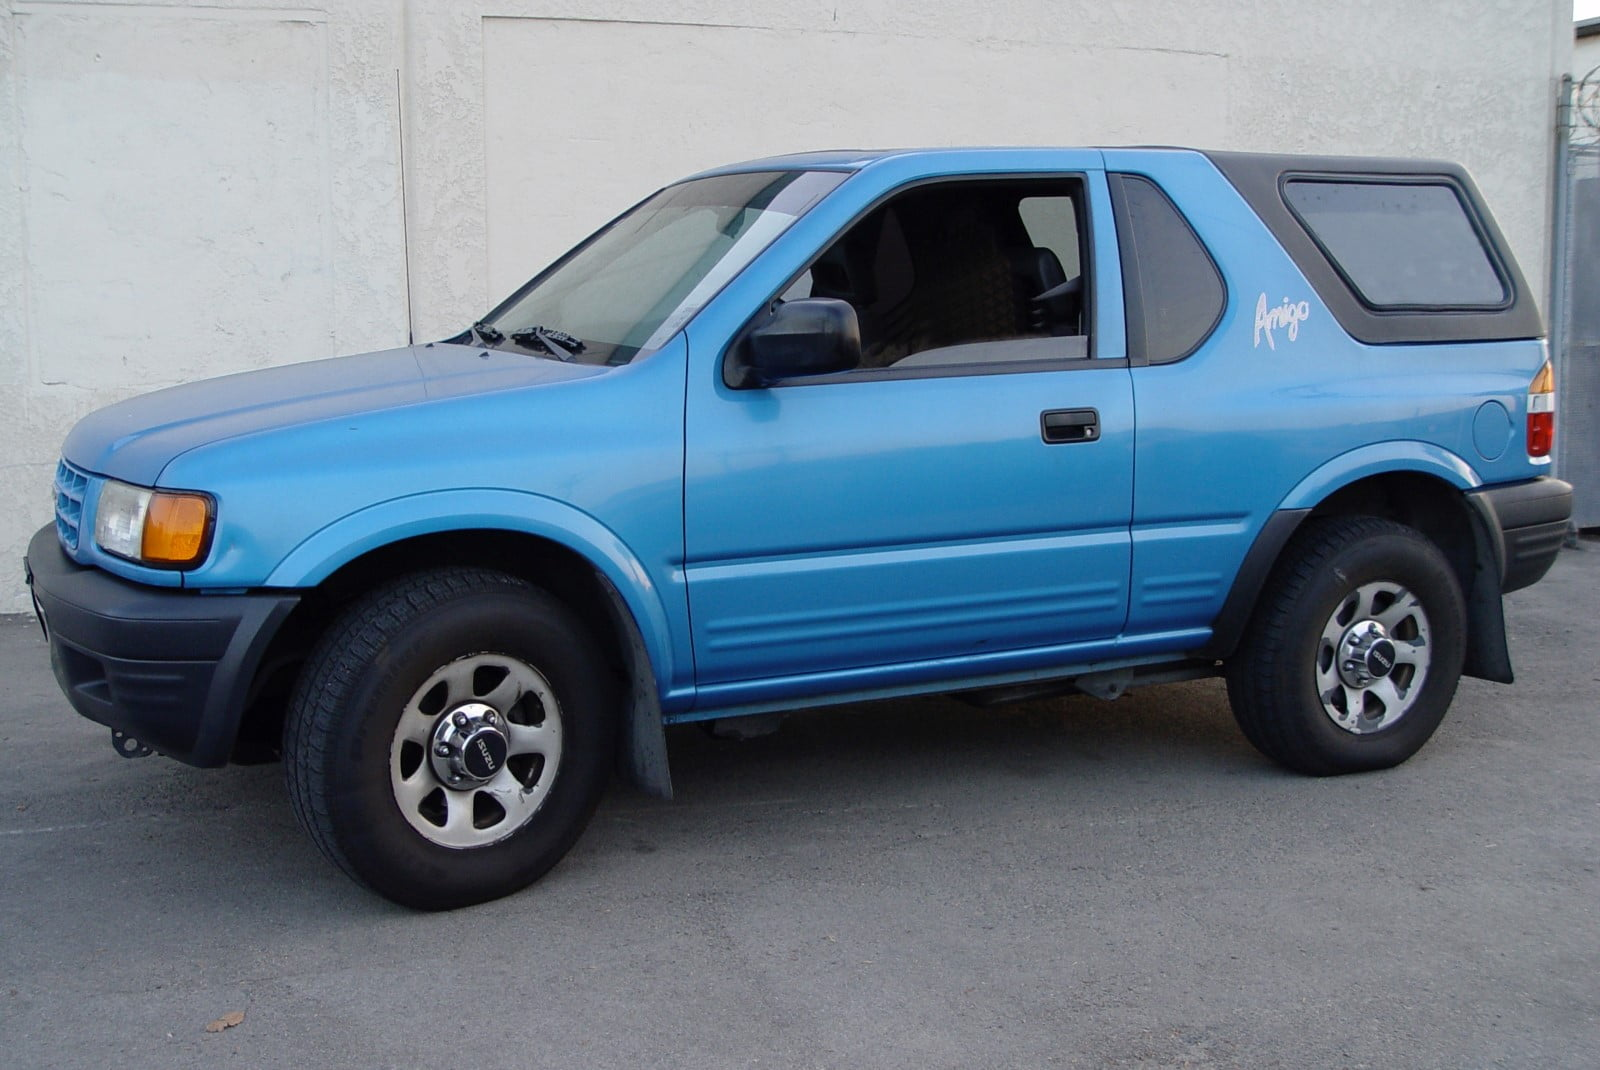 1-Piece Removable Hardtop for Isuzu Amigo (1989-1994, 1998-2000) & Rodeo  Sport (2001-2003)